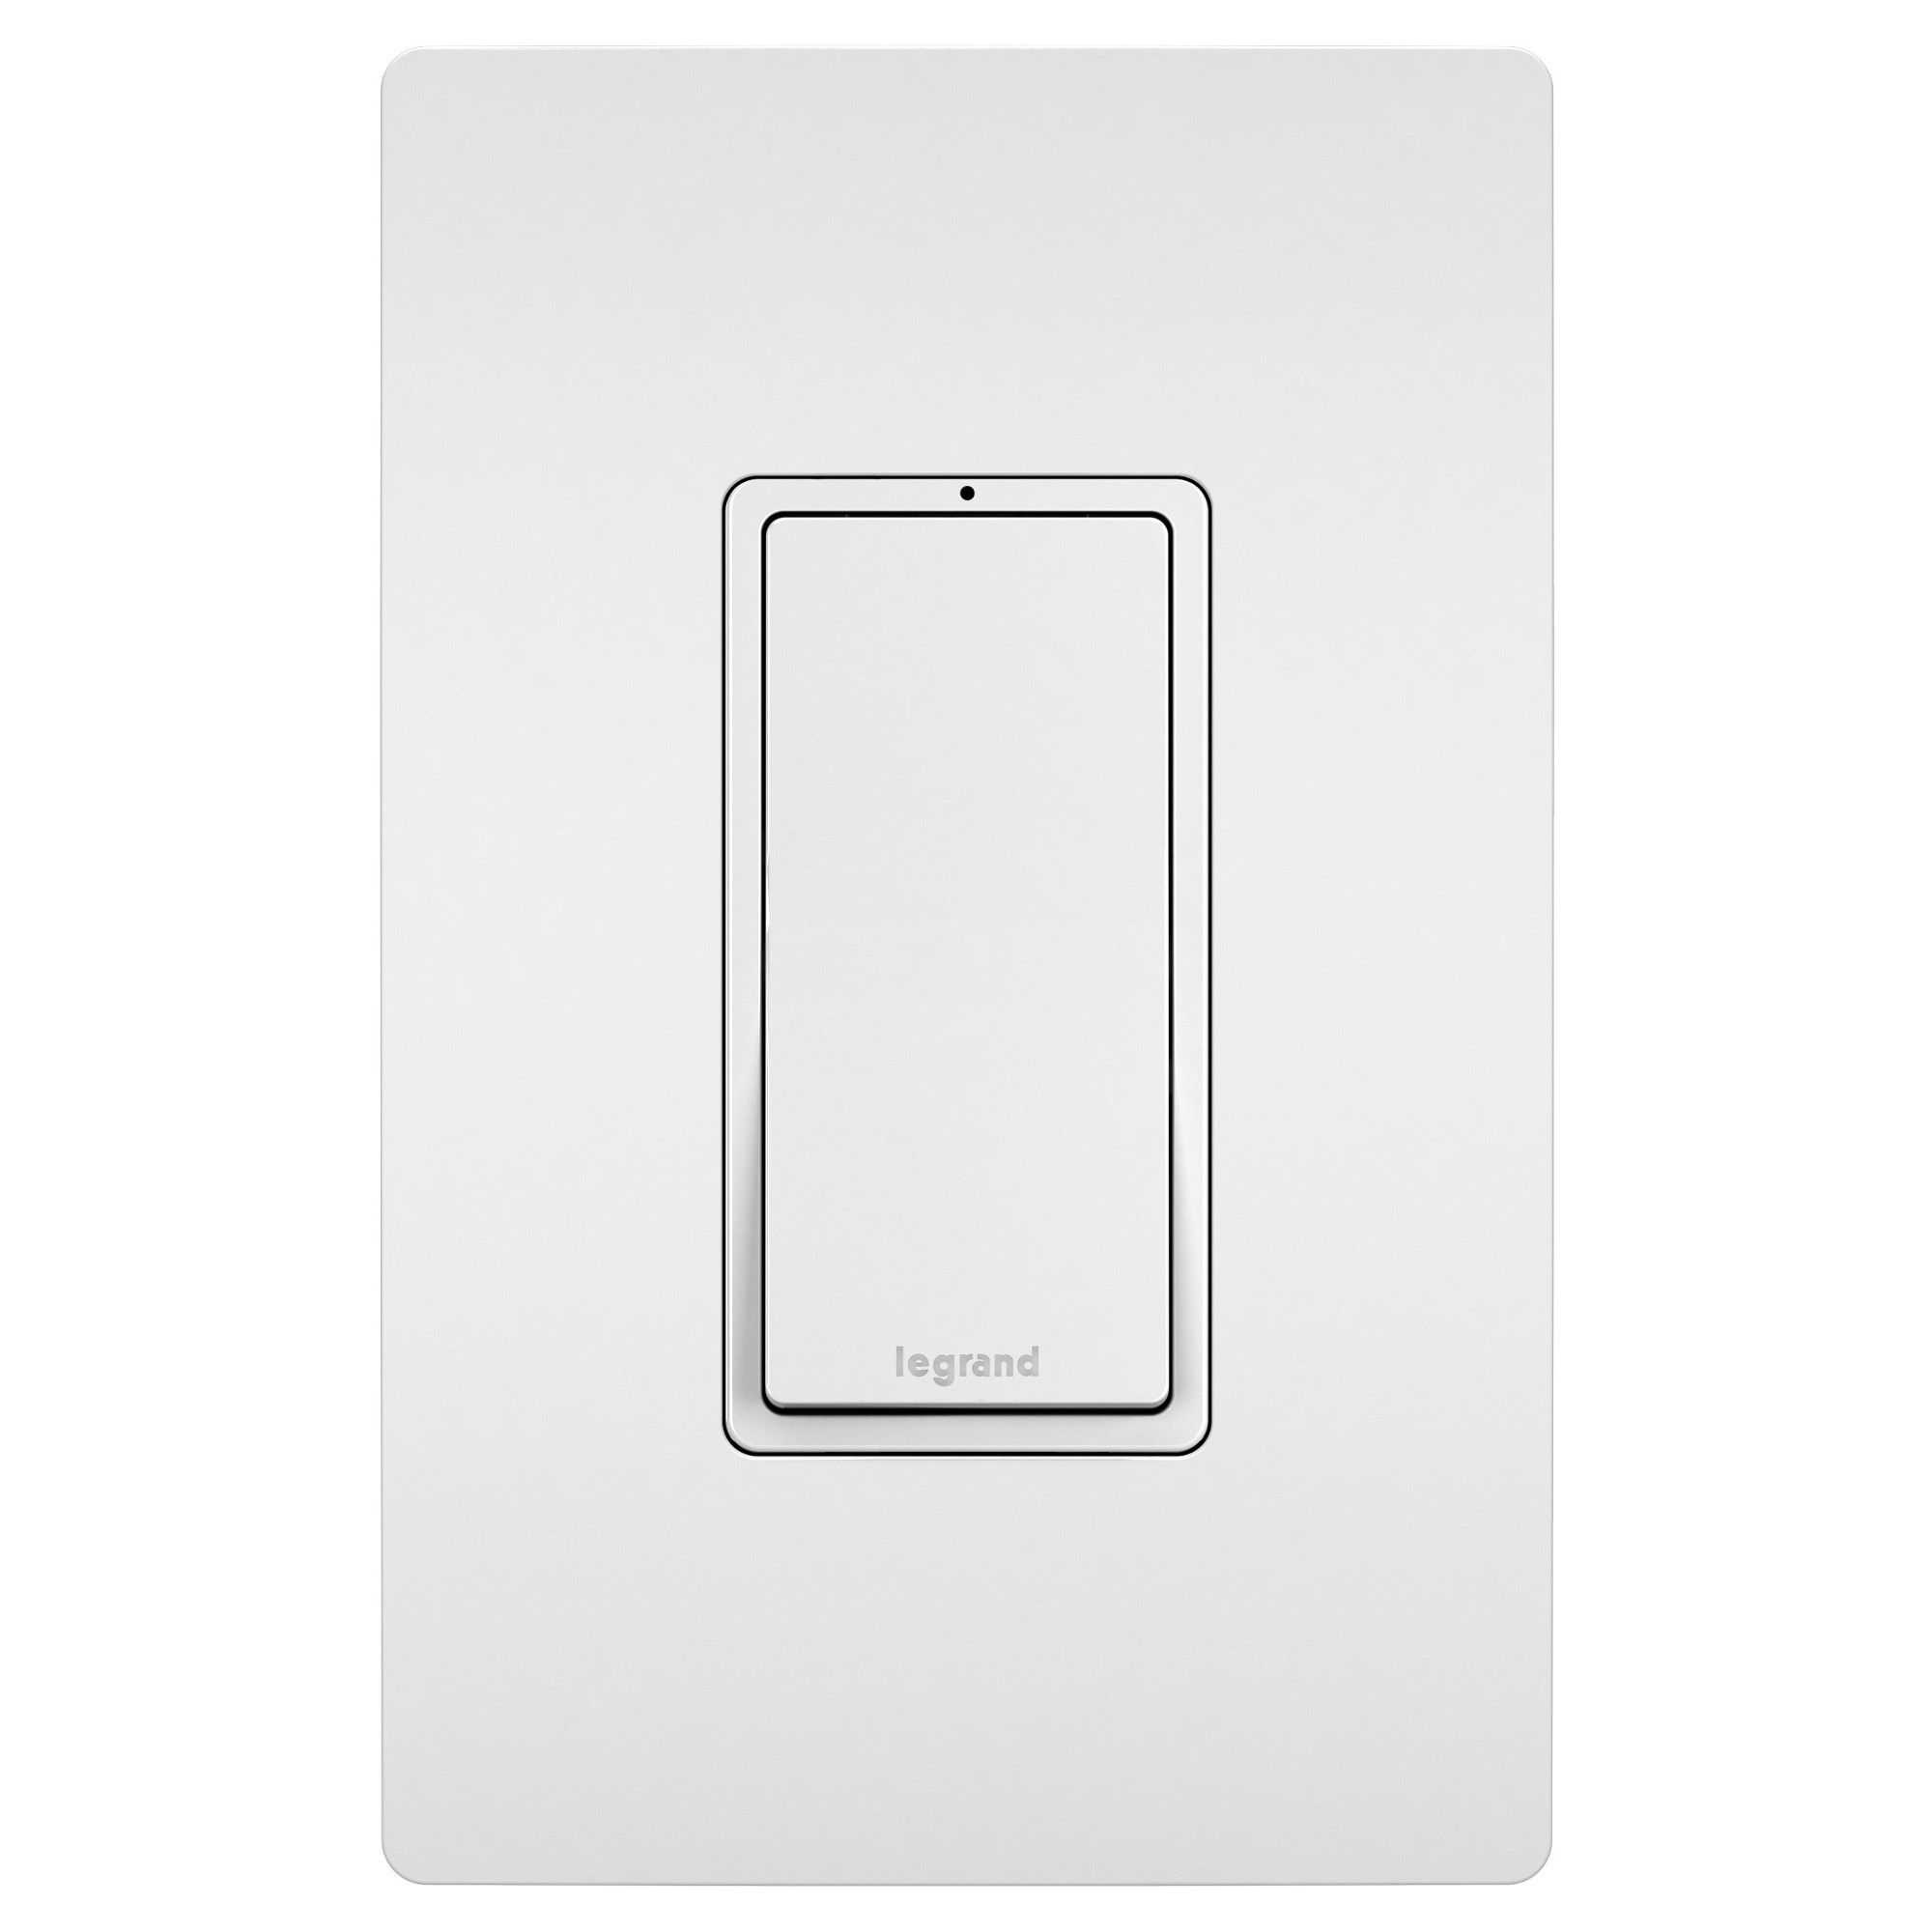 hight resolution of 15 amp single pole lighted switch by legrand radiant